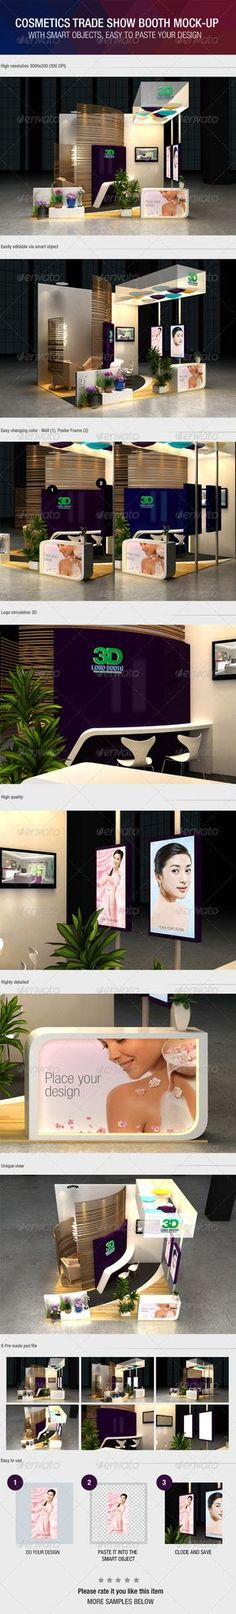 Cosmetics exhibition booth mock-up  6 Pre made psd file High resolution 3000×2000 pixel (300dpi) Easy editable via smart objects Easy changing wall color and Poster frame Logo simulation 3D High quality Highly detailed Unique view